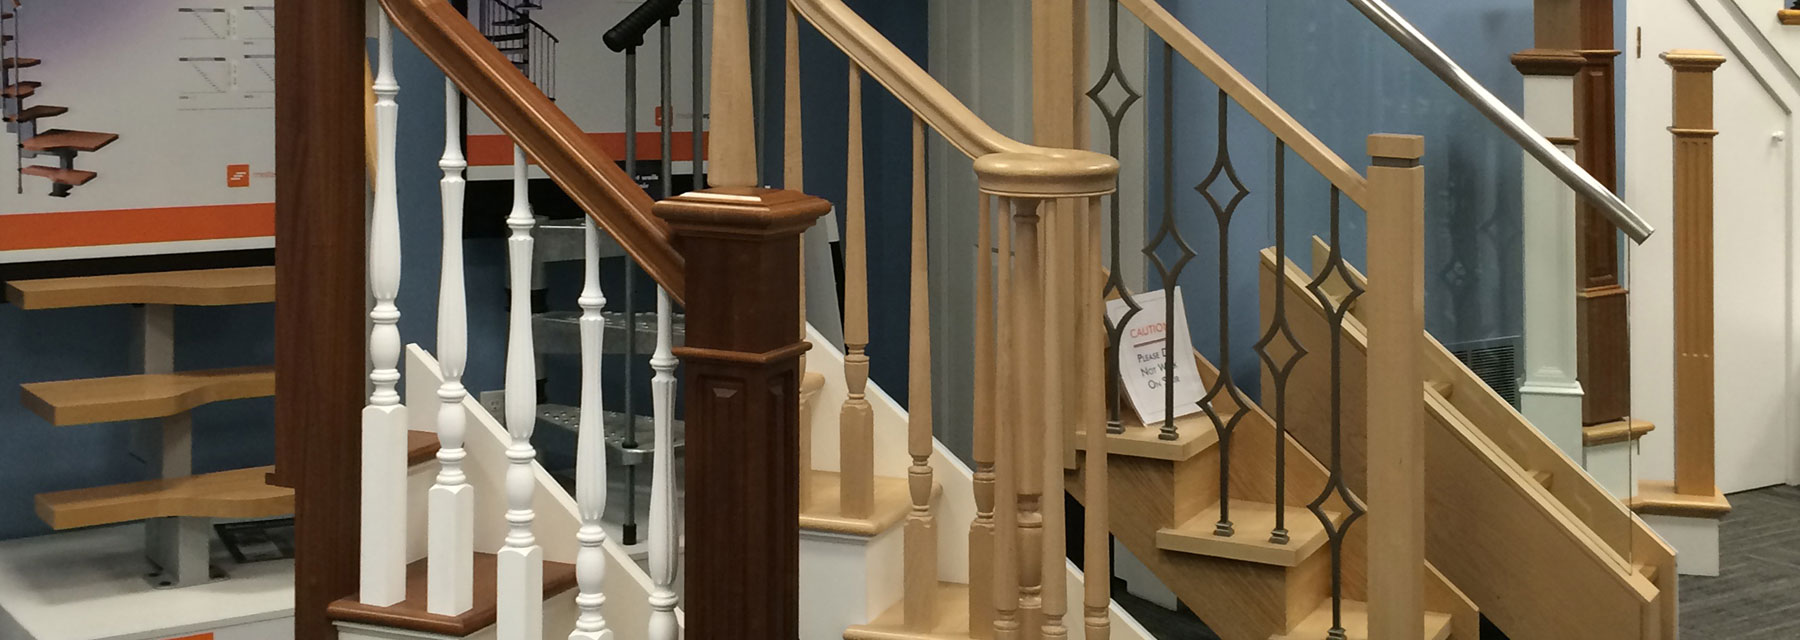 Cooper Stairworks Display Photo